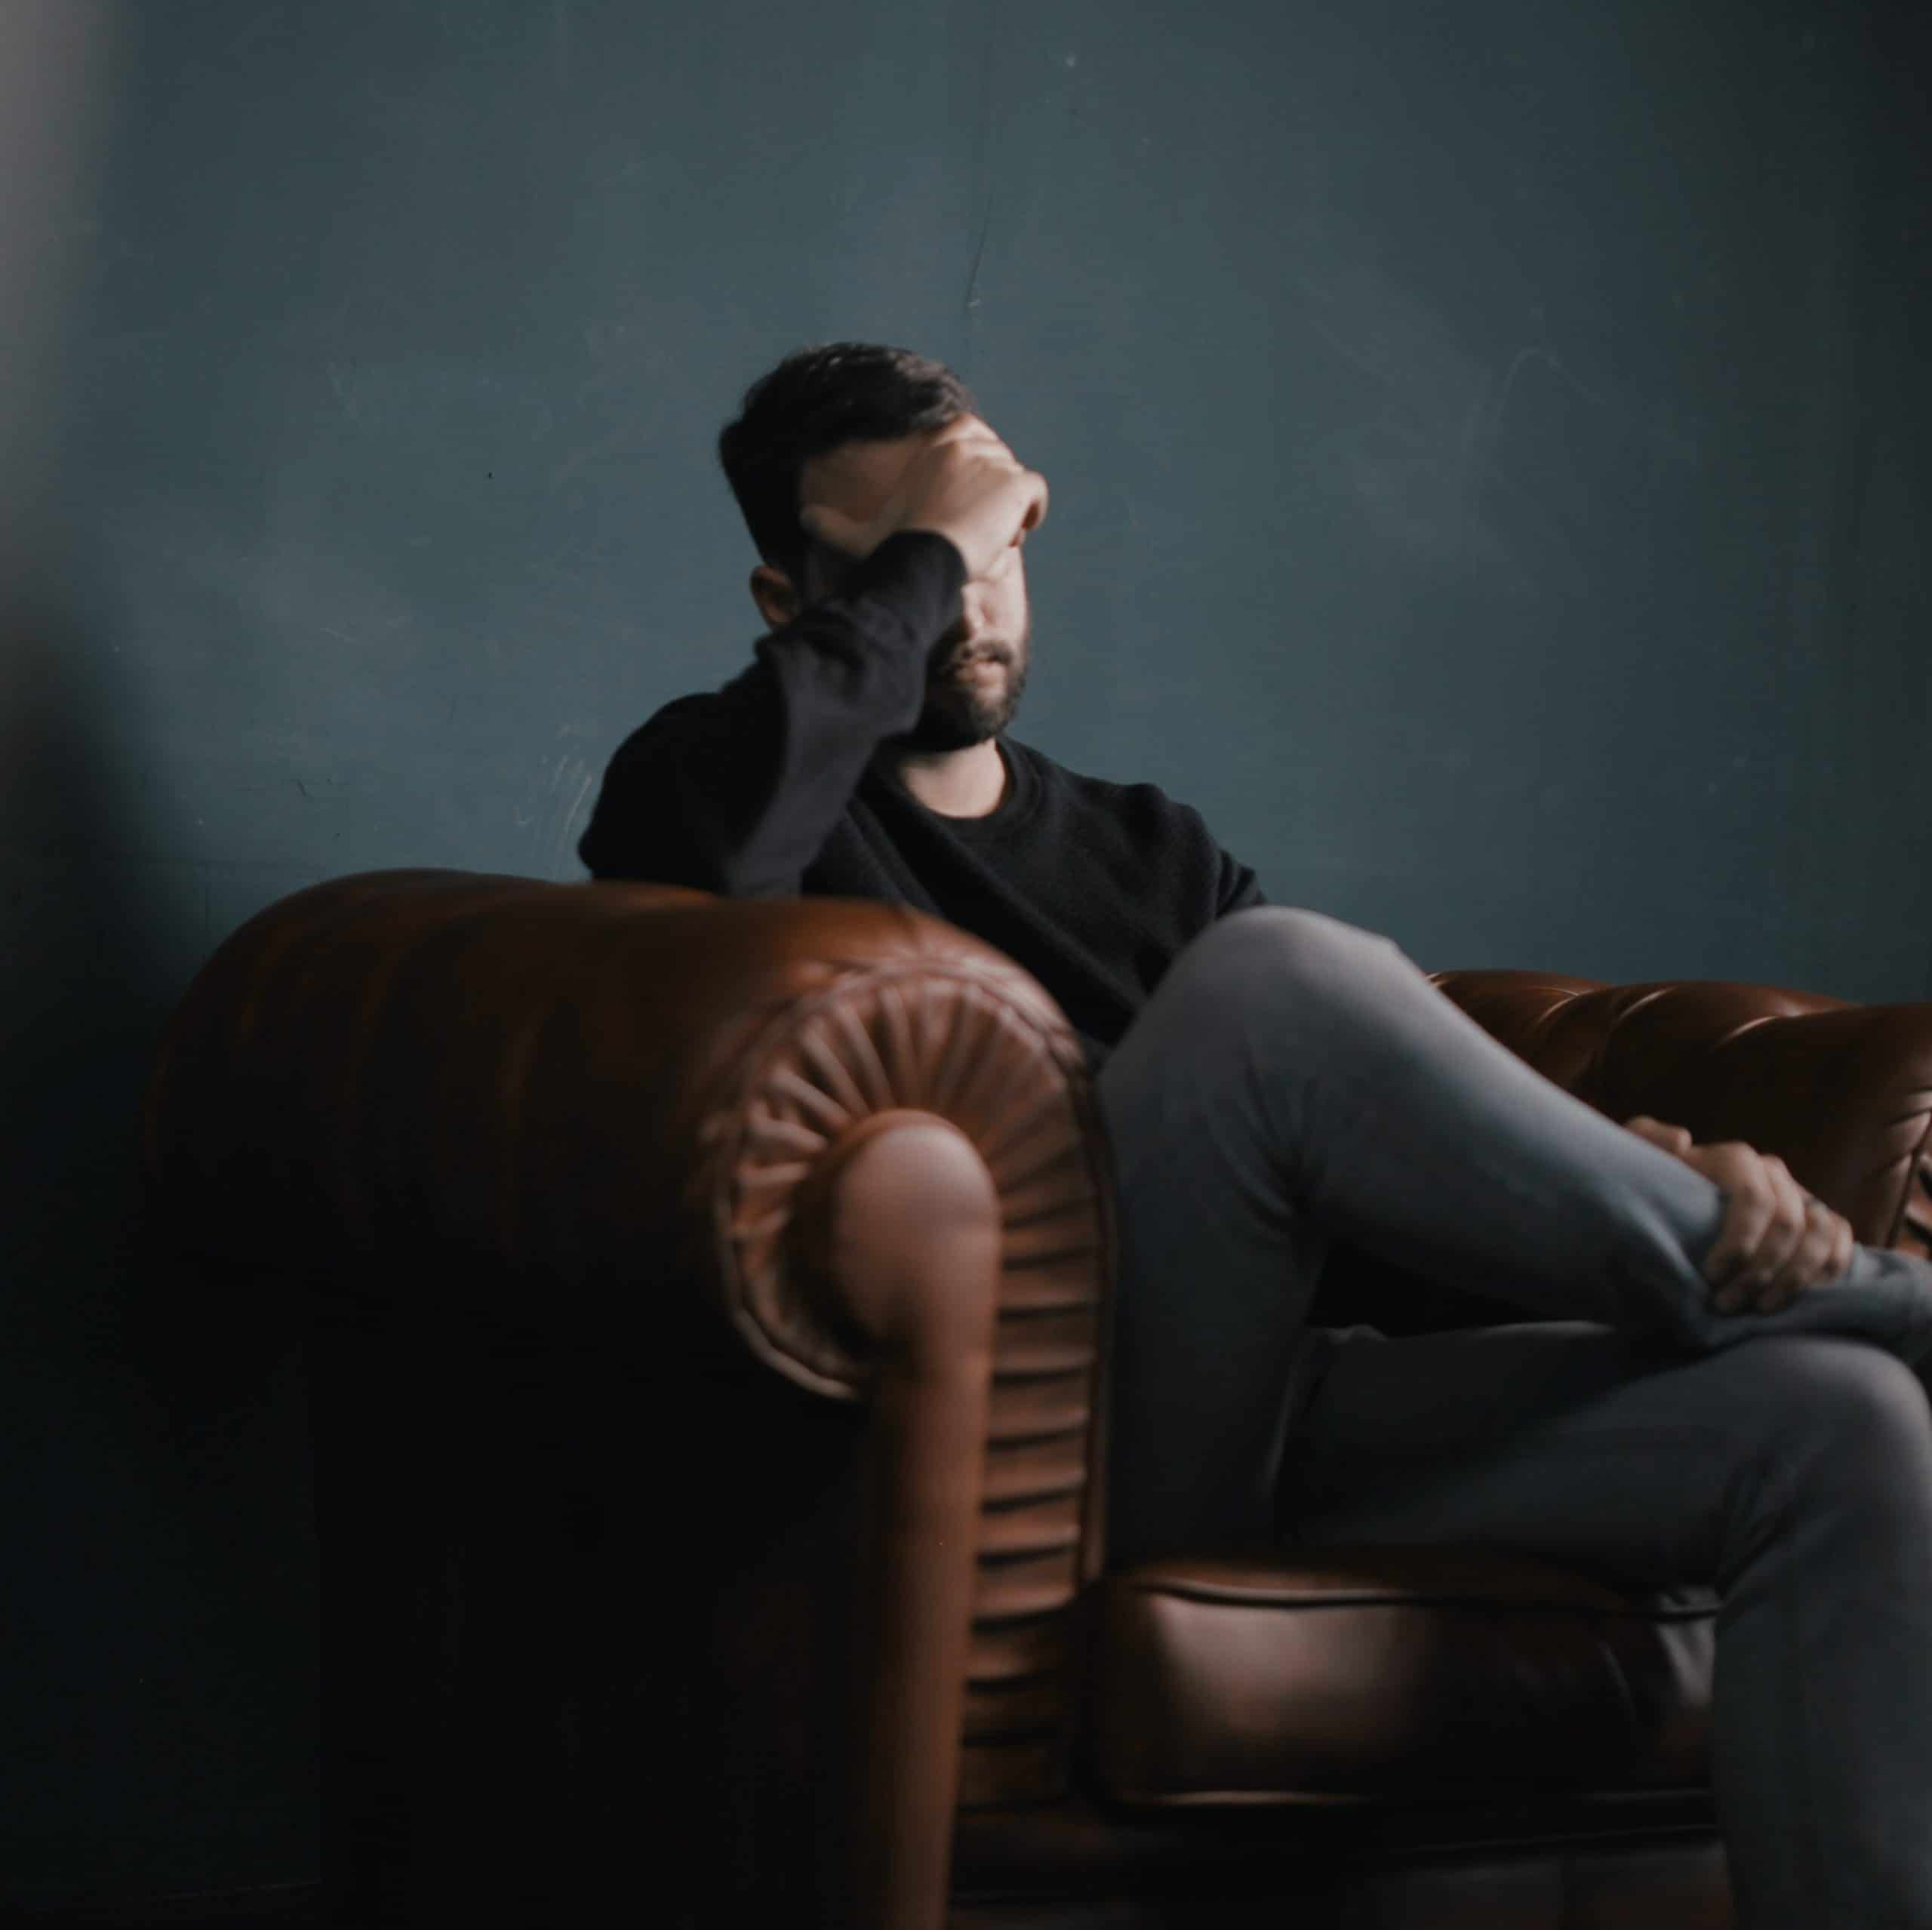 A man sits in a brown leather armchair and massages his temples.